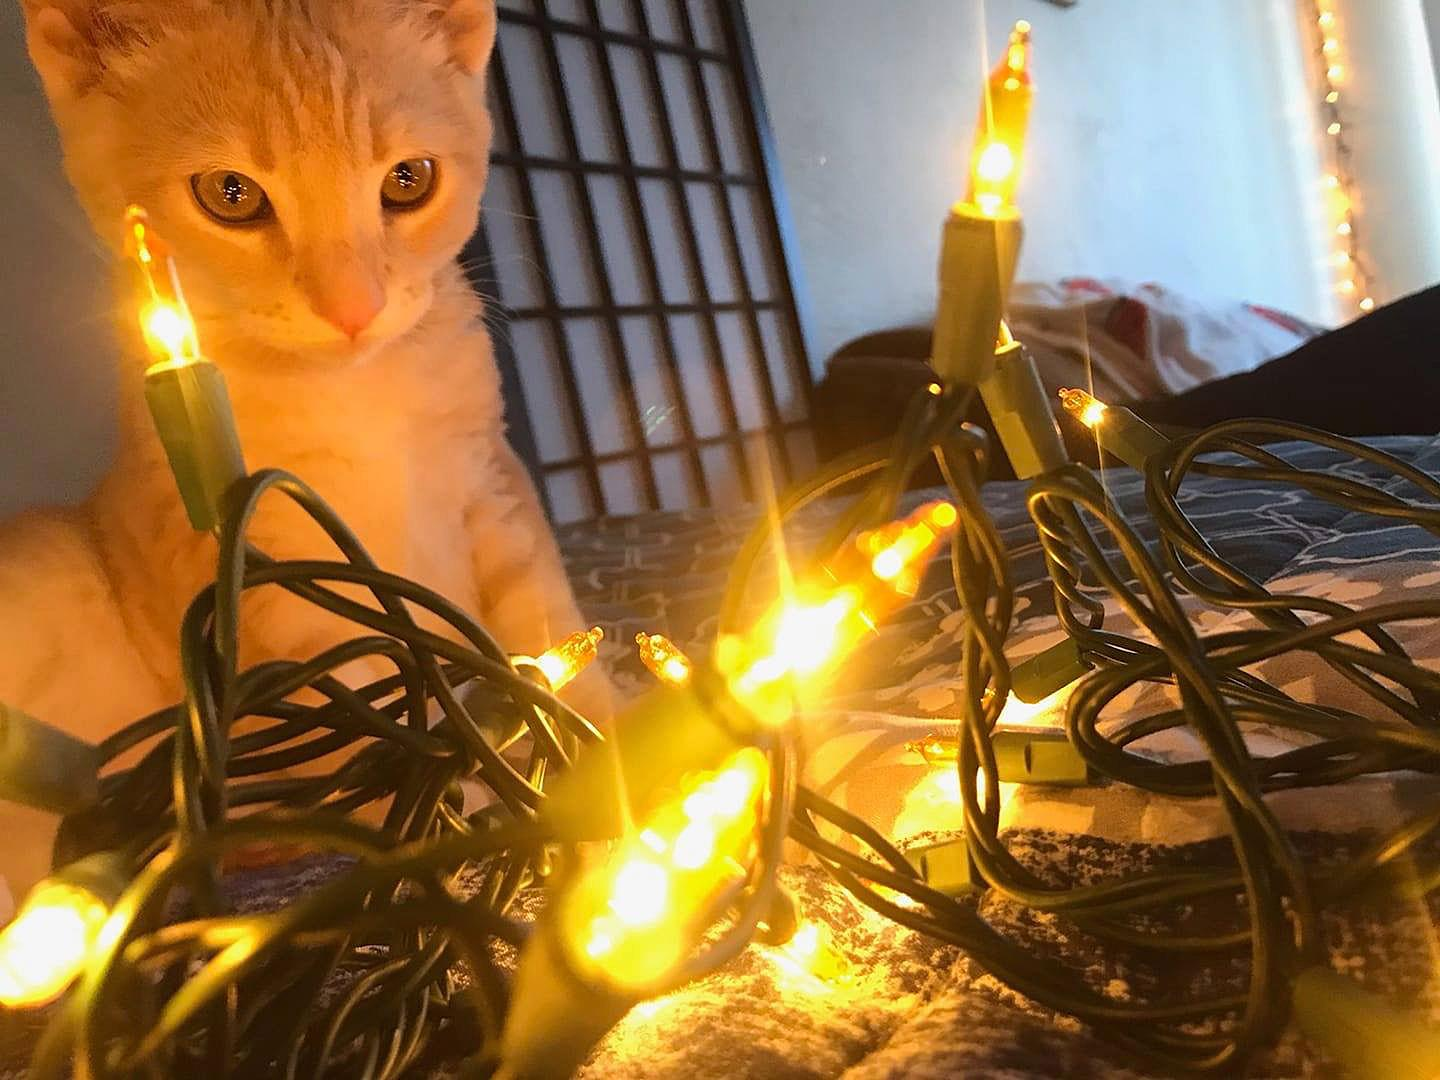 Cassidy Walters of Ashland took this photo of her kitty Casper studying the Christmas lights.